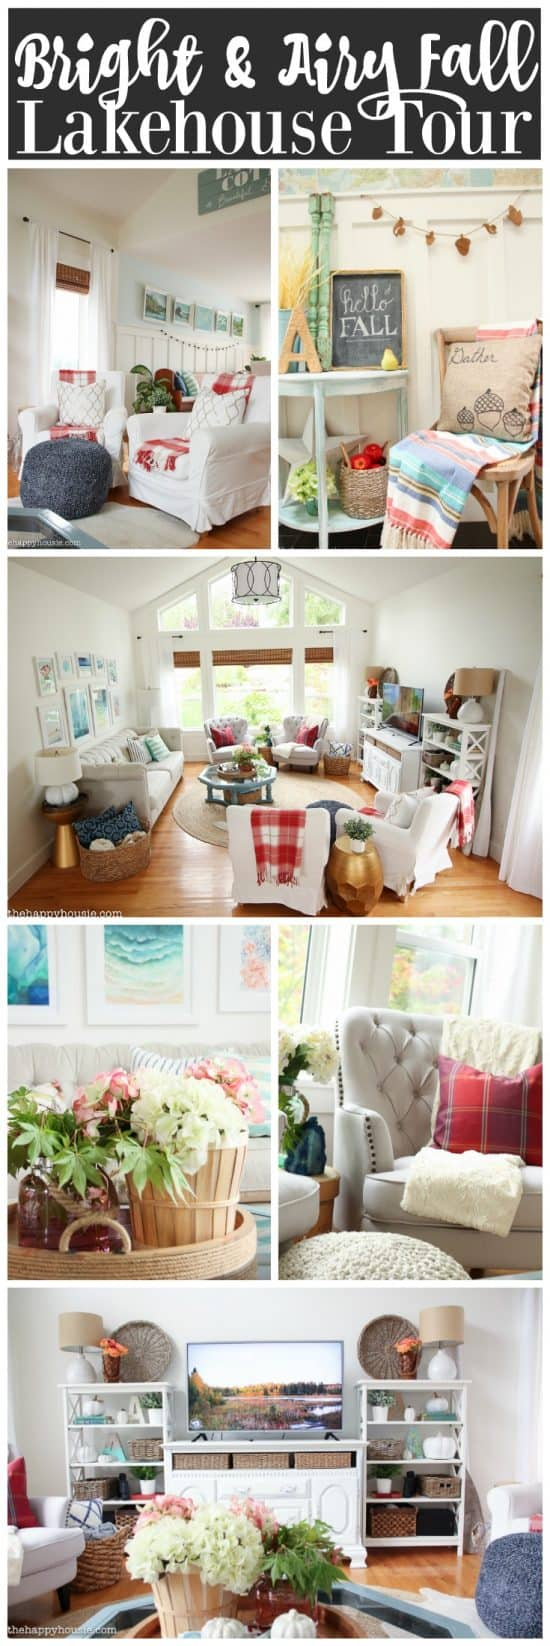 youll-love-this-bright-and-airy-fall-house-tour-lake-house-tour-with-pops-of-coral-and-plaids-at-the-happy-housie